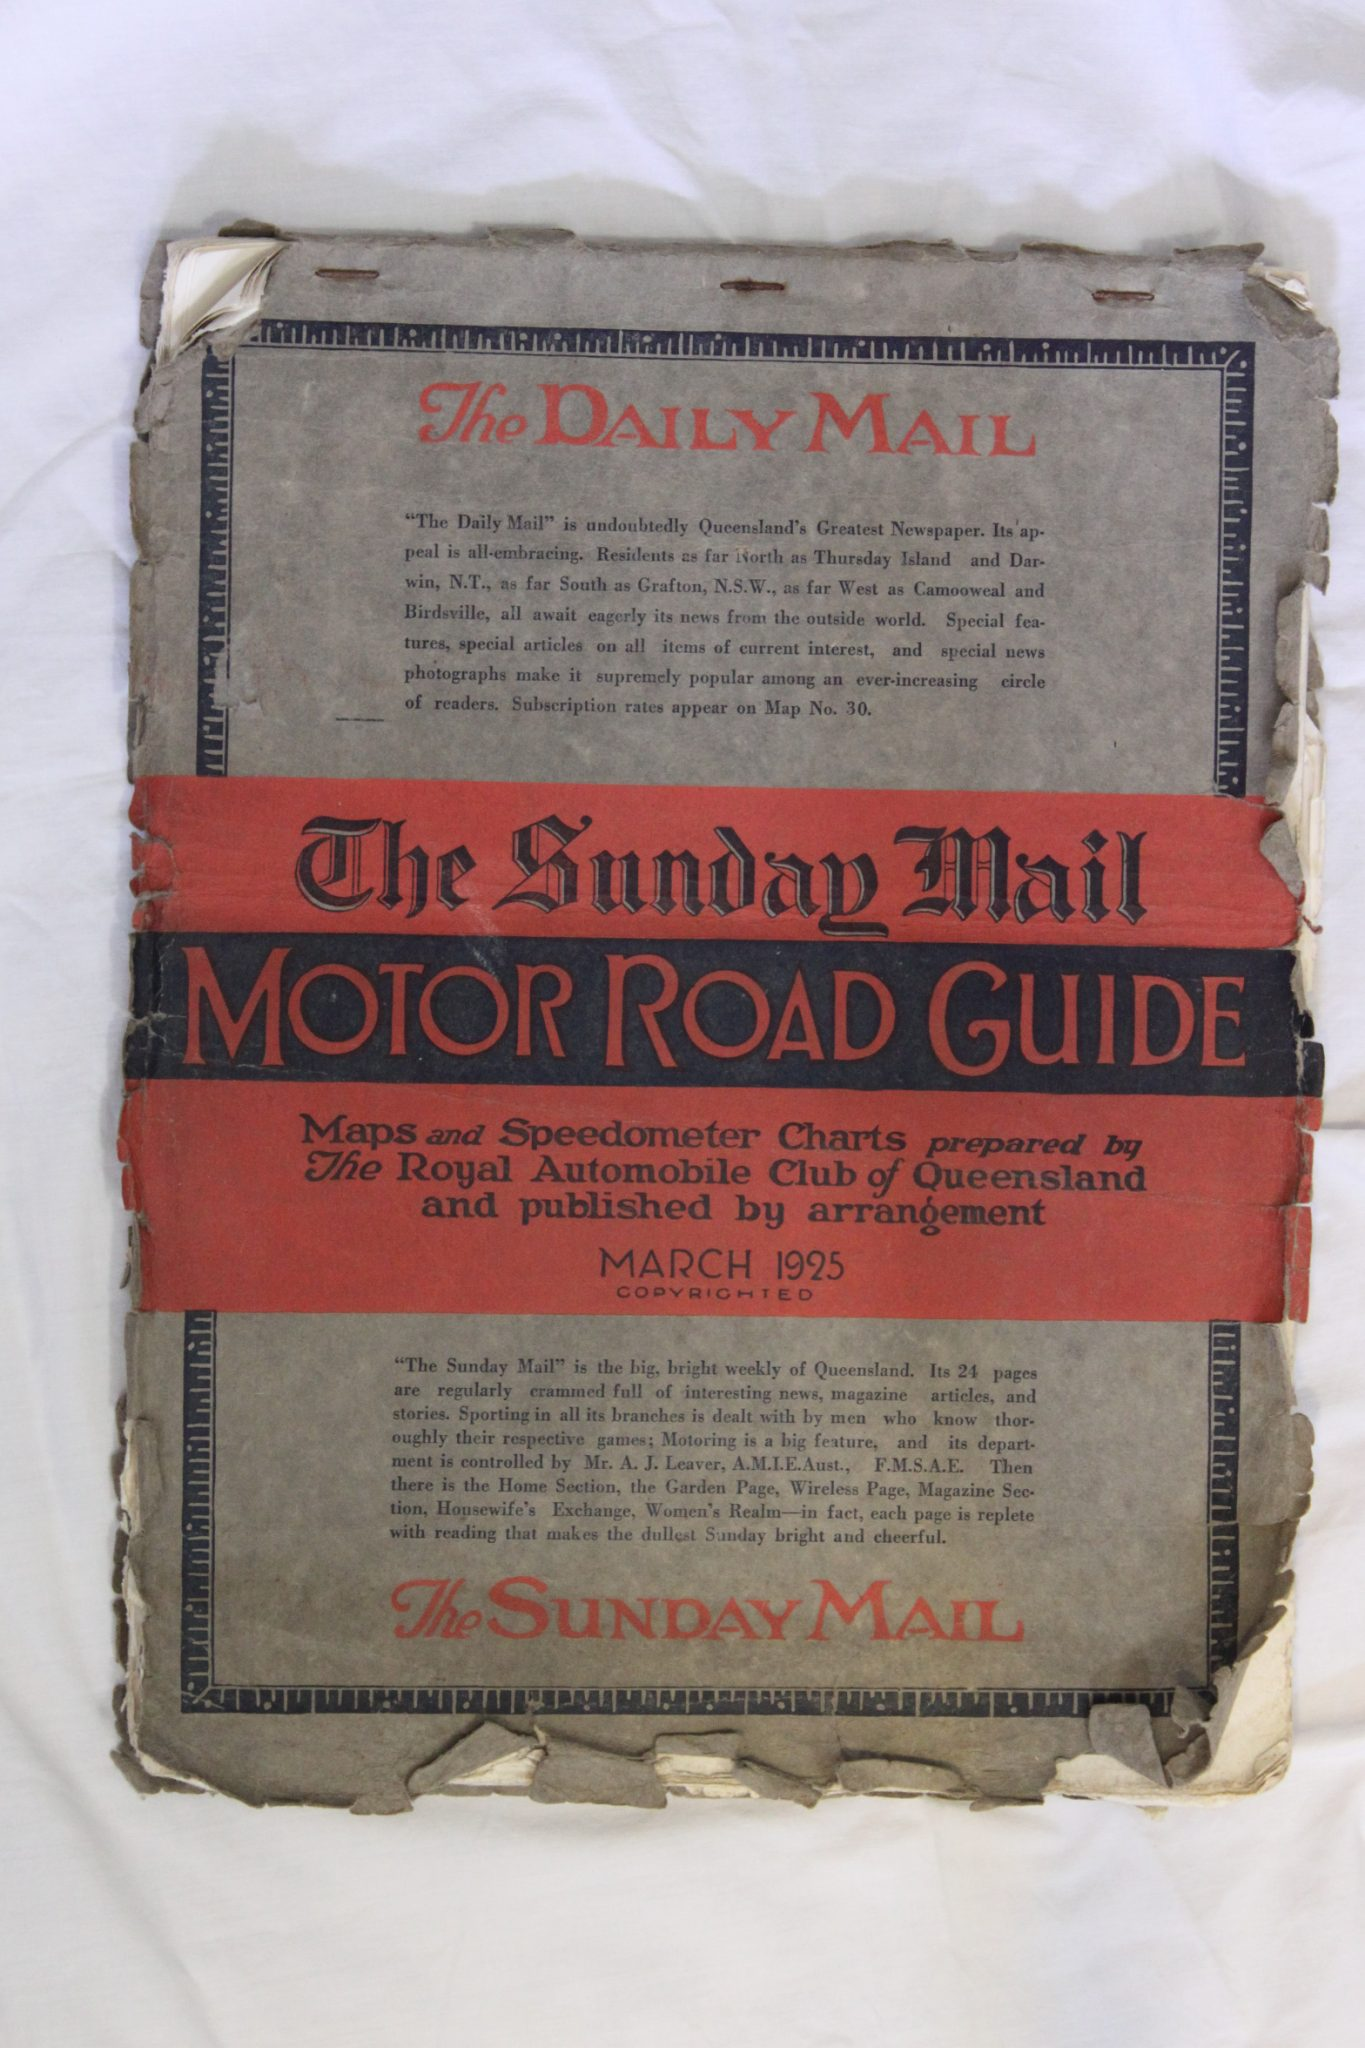 Road map of Queensland issued March 1925